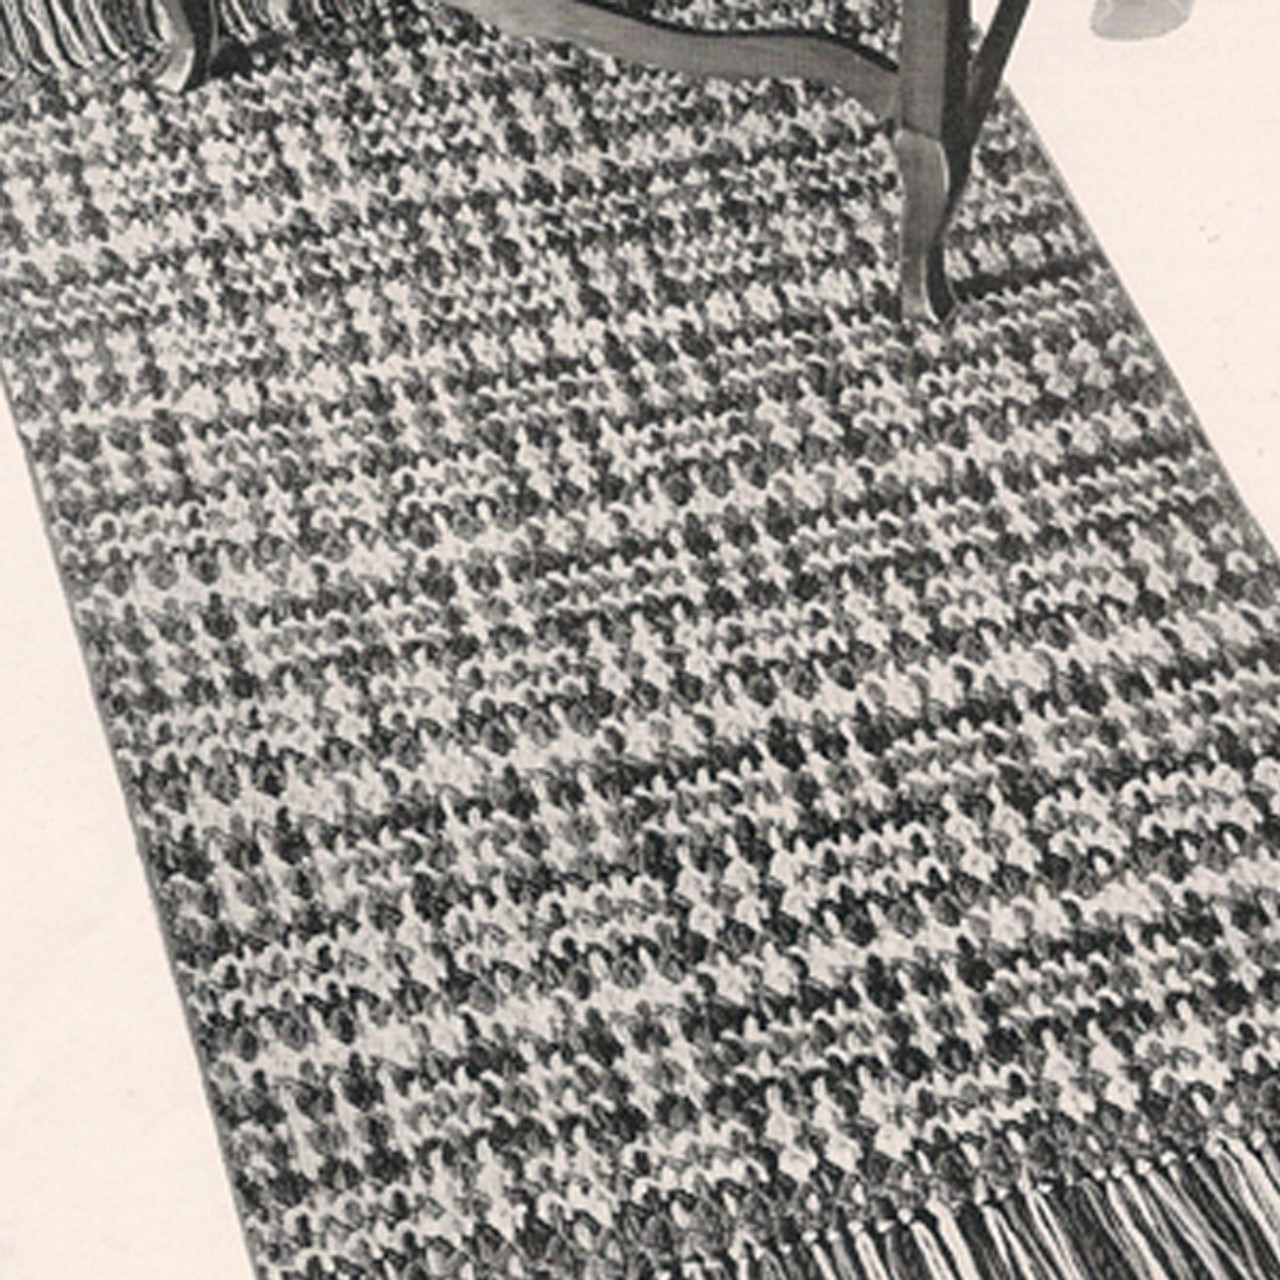 Provincial Crochet Rug Pattern, Fringed with Woven Stripes